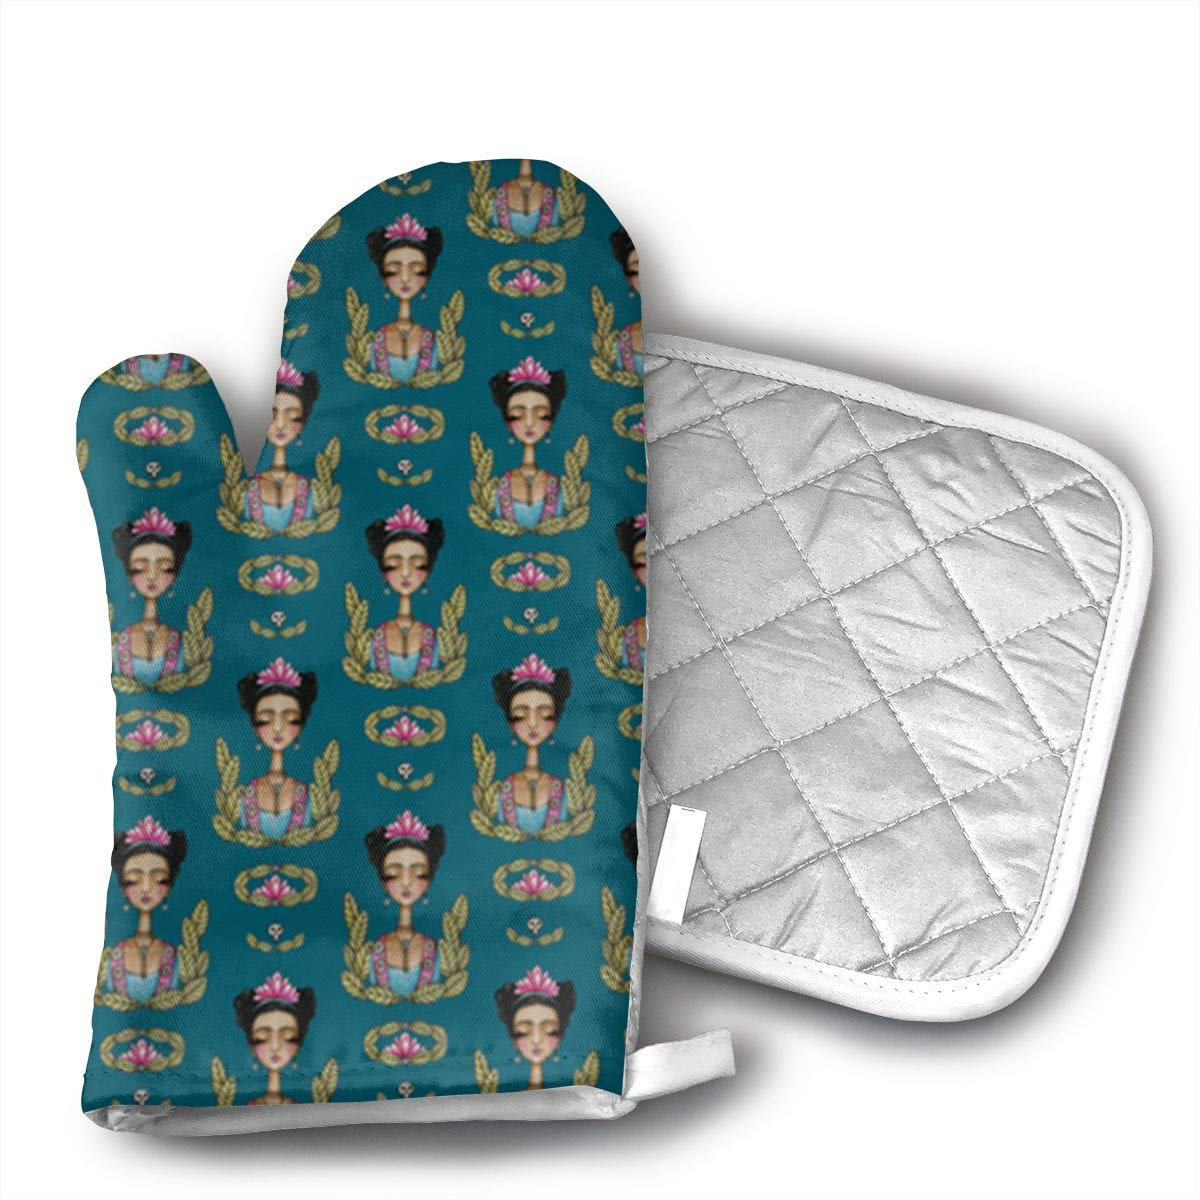 Wiqo9 Frida Kahlo Pattern Oven Mitts and Pot Holders Kitchen Mitten Cooking Gloves,Cooking, Baking, BBQ.